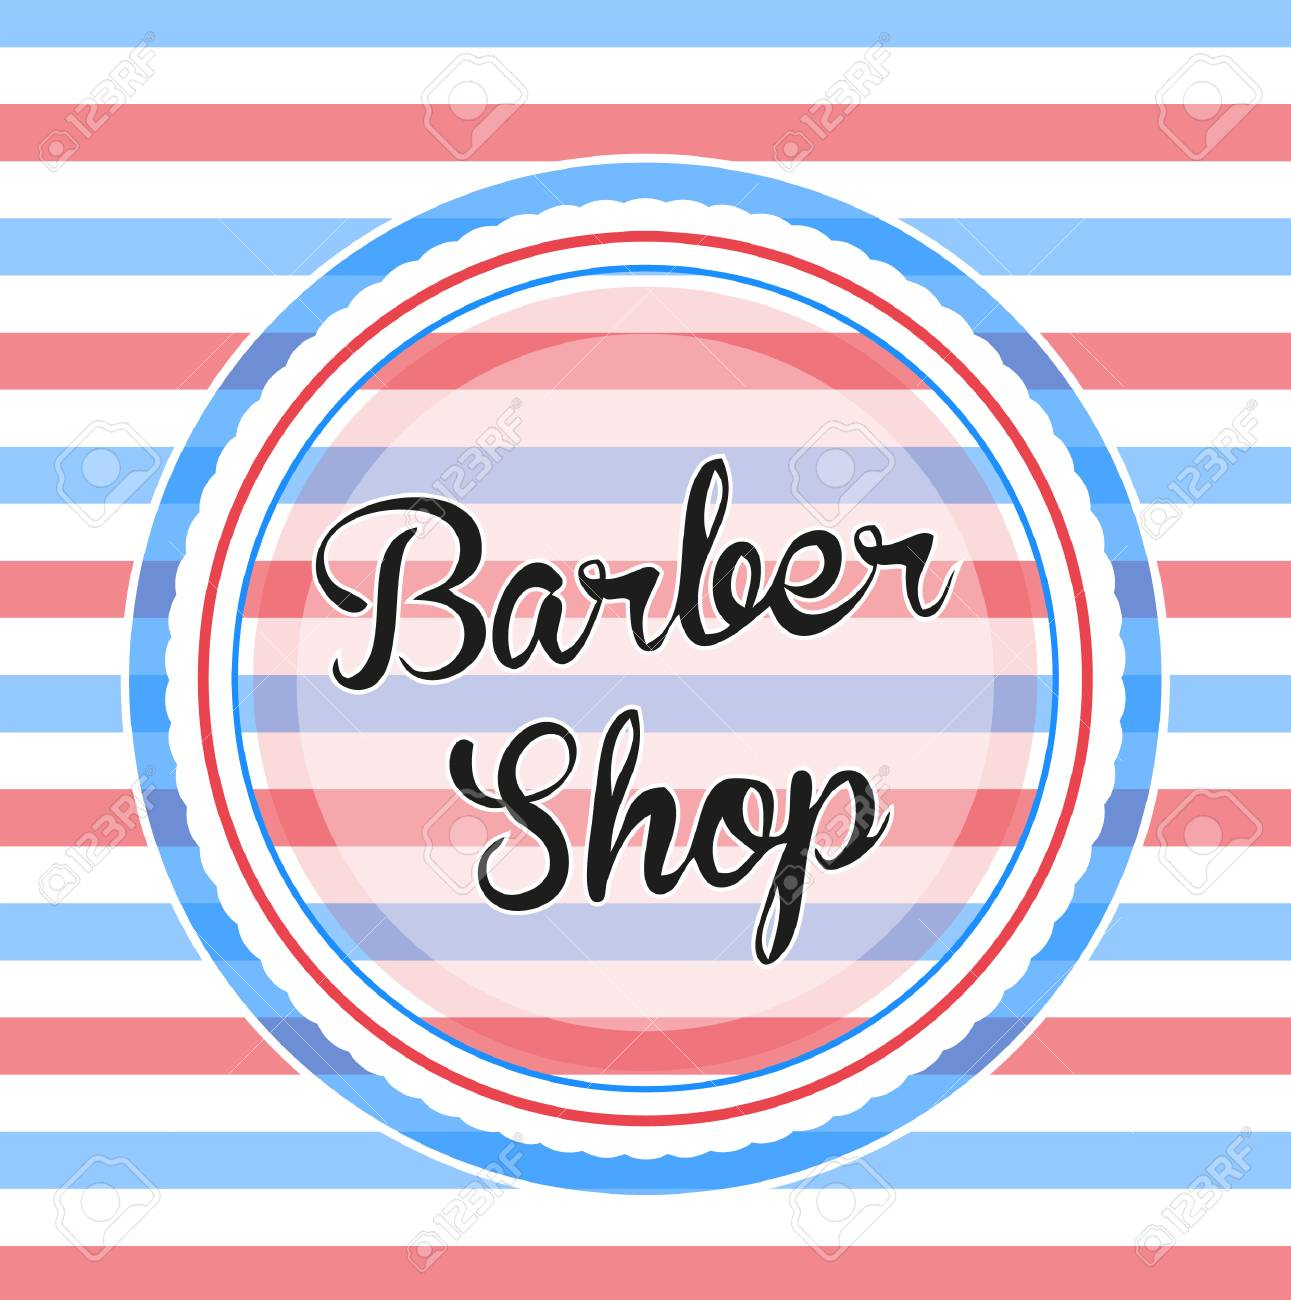 Barber Shop Stock Photo - 26509583